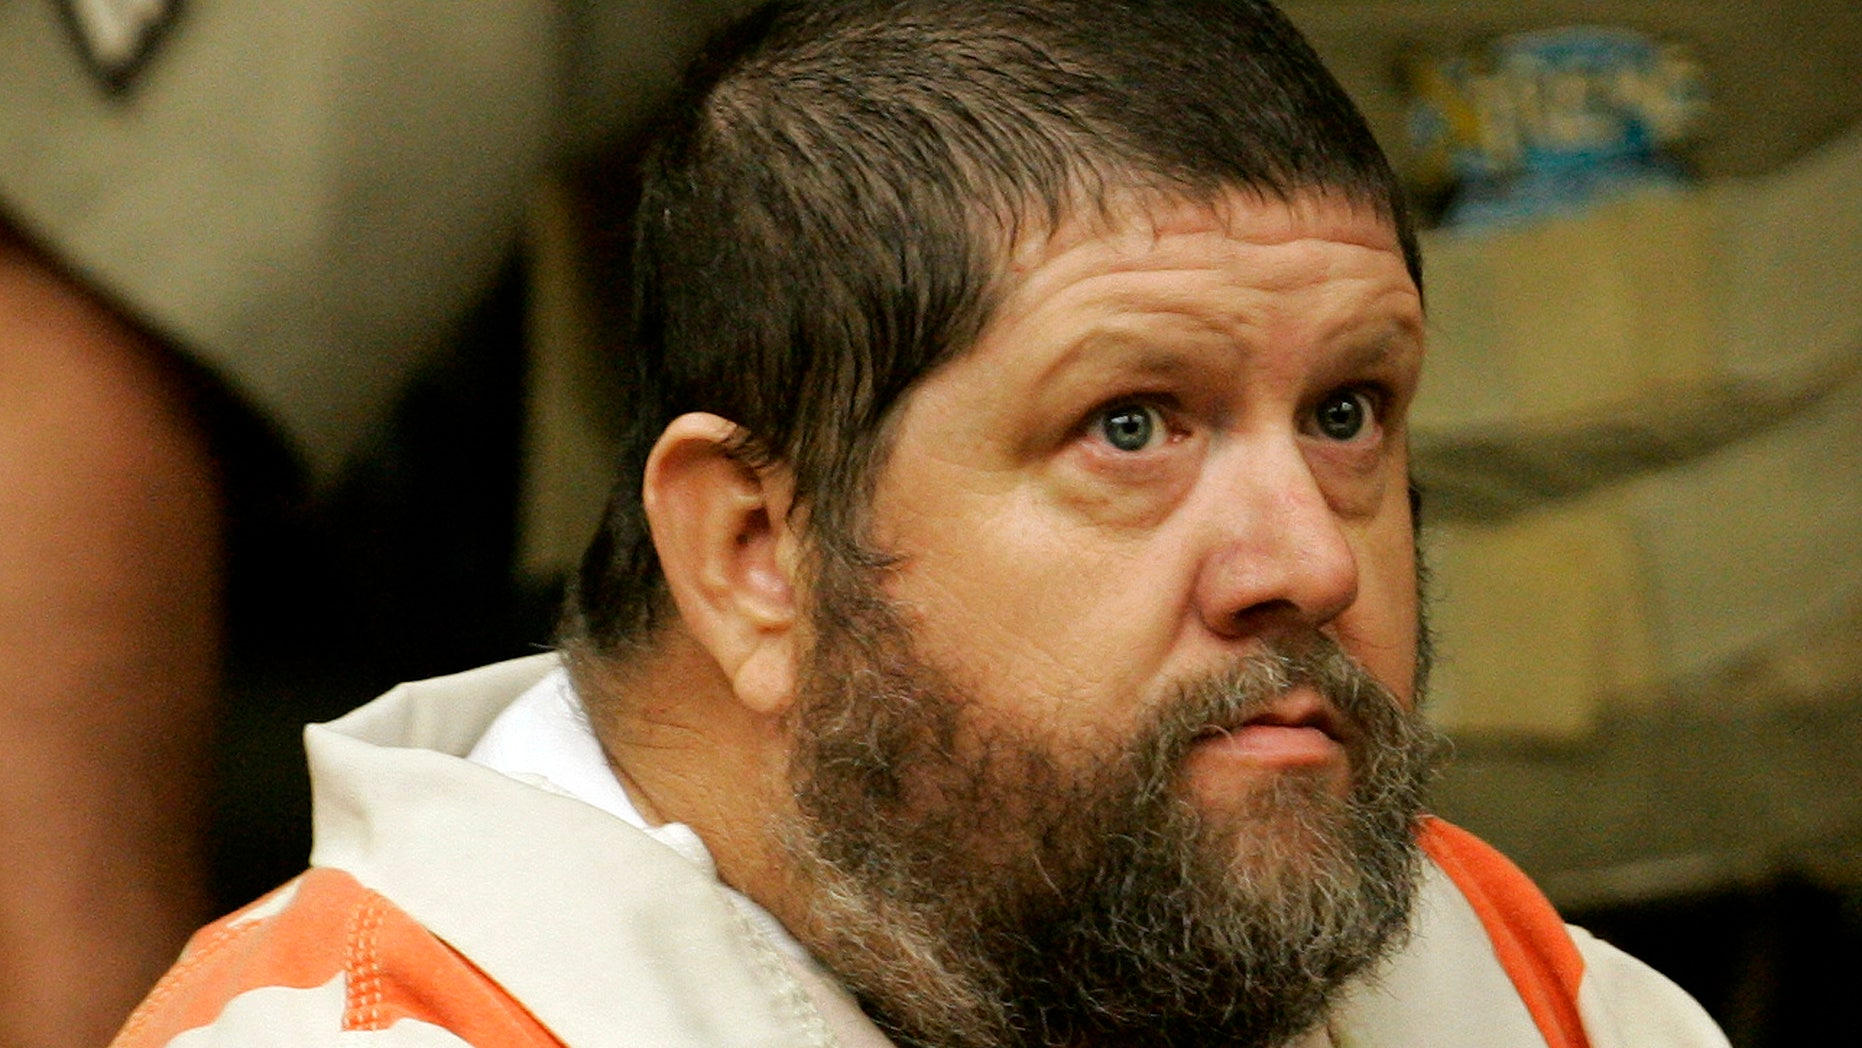 May 28, 2009: Robert Kenneth Stewart attends a hearing at Moore County Superior Court in Carthage, North Carolina. Stewart faces eight counts of first-degree murder.